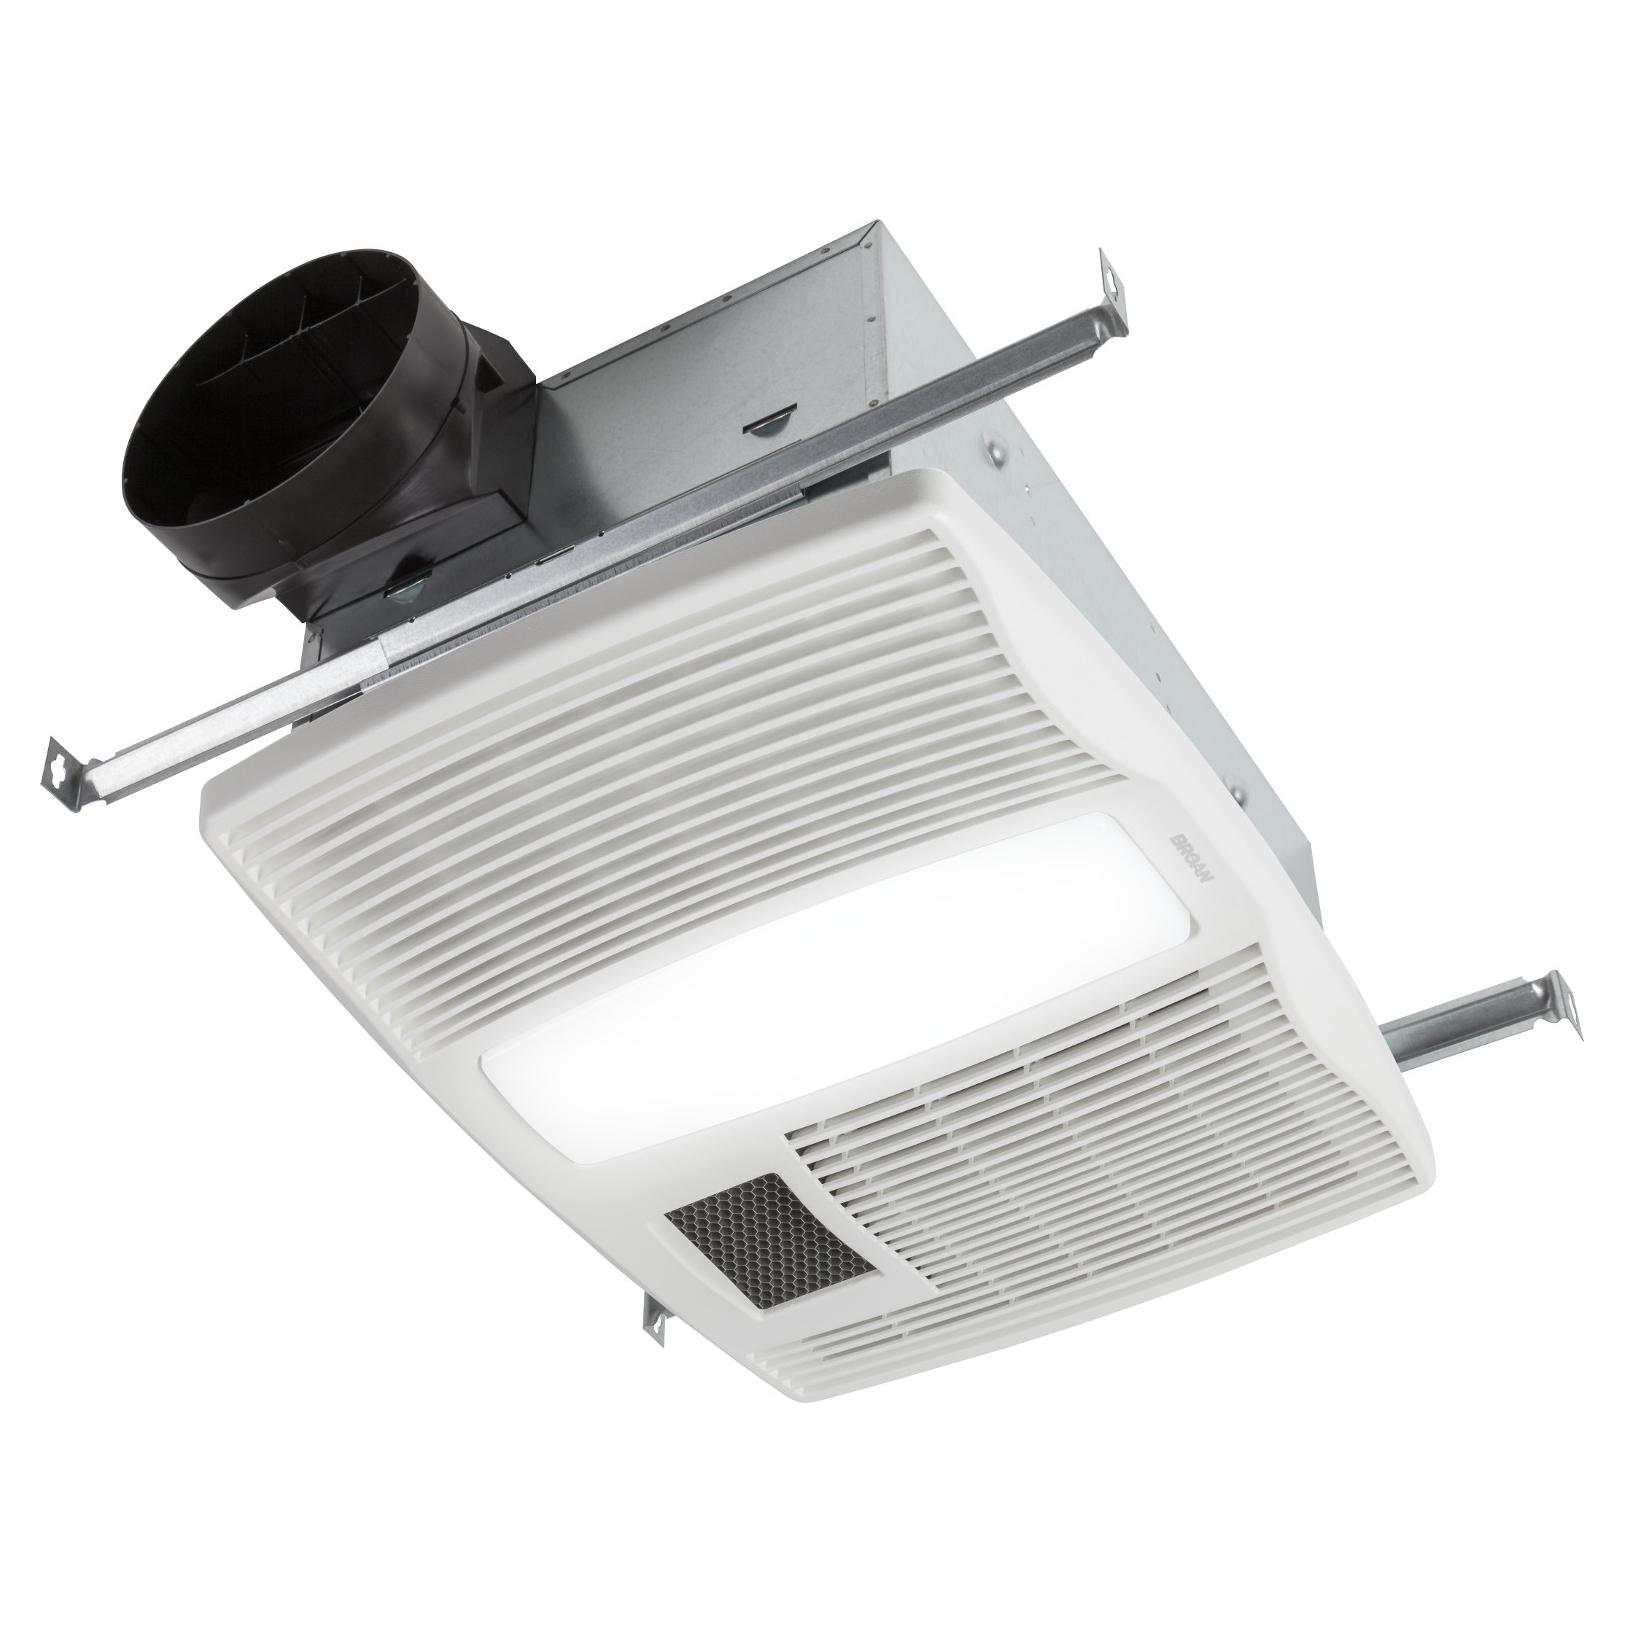 Broan qtx110hl ultra silent series bath fan with heater and light view larger aloadofball Image collections